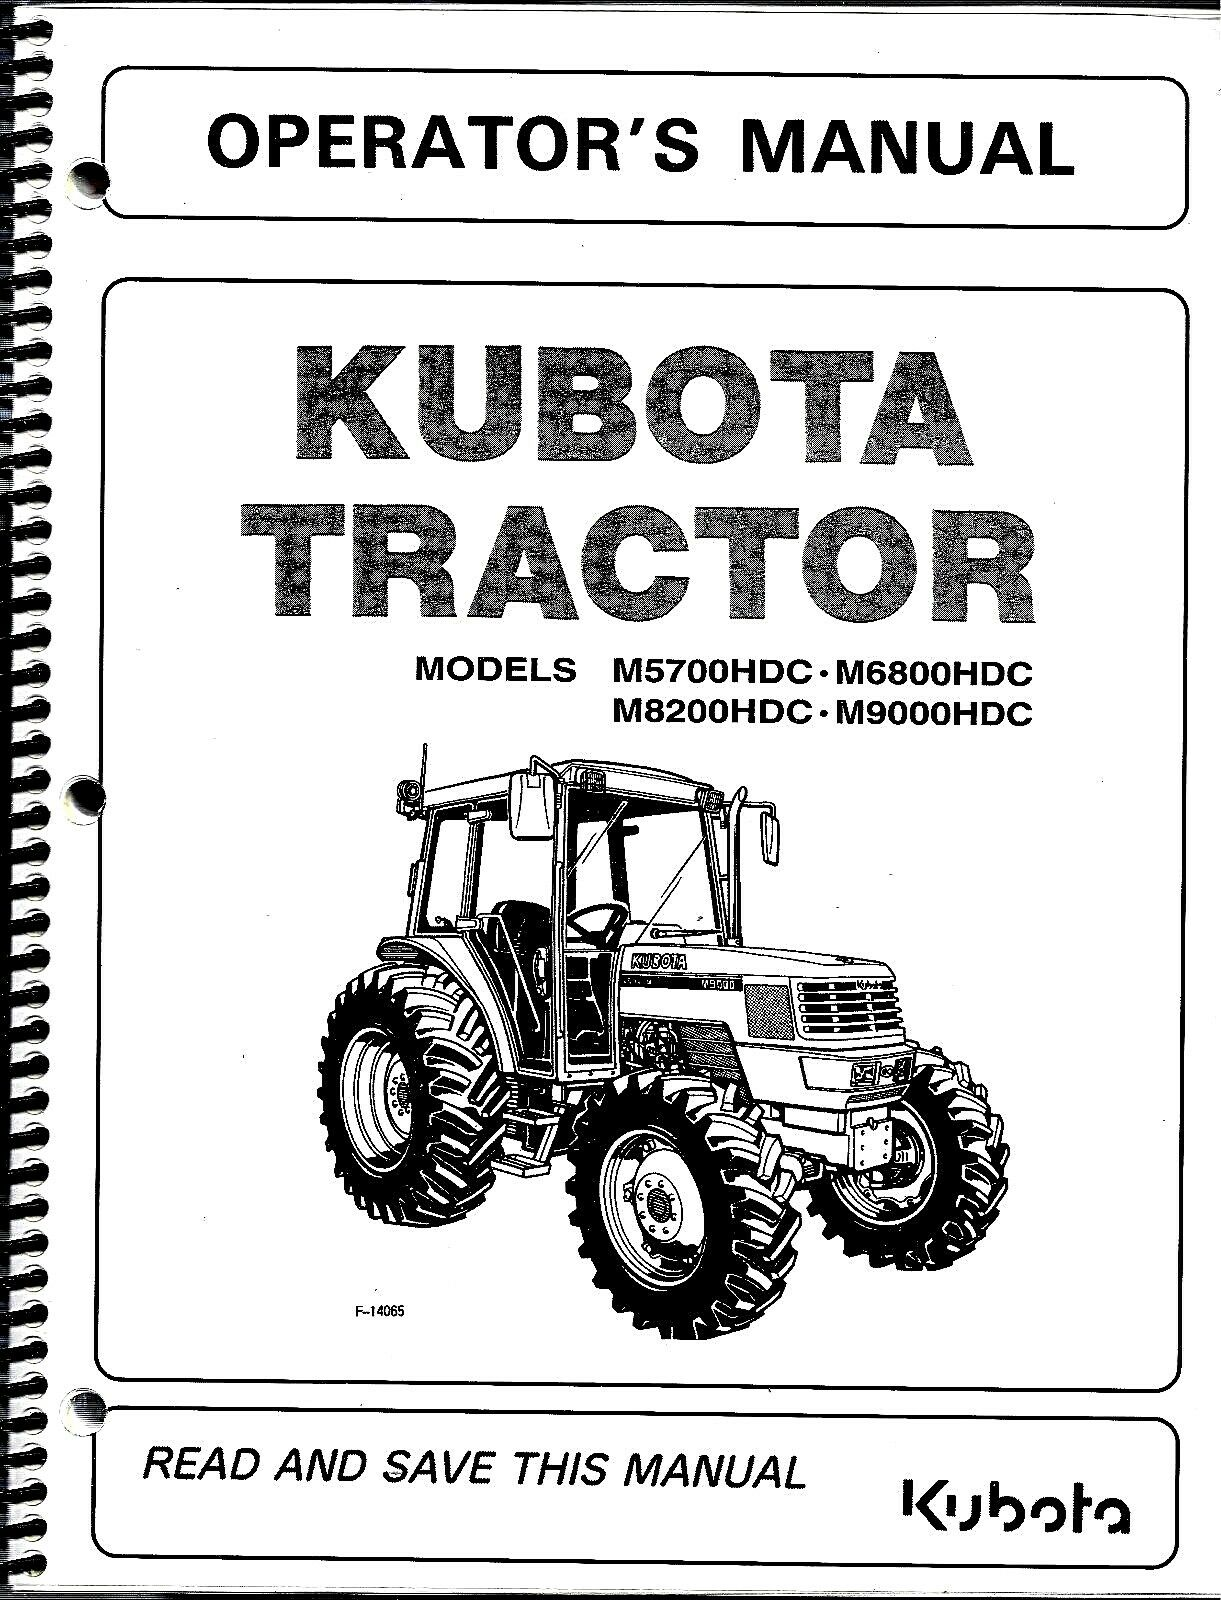 Kubota M5700HDC M6800HDC M8200HDC M9000HDC Tractor Operator's Manual  3A881-99711 1 of 1Only 1 available ...